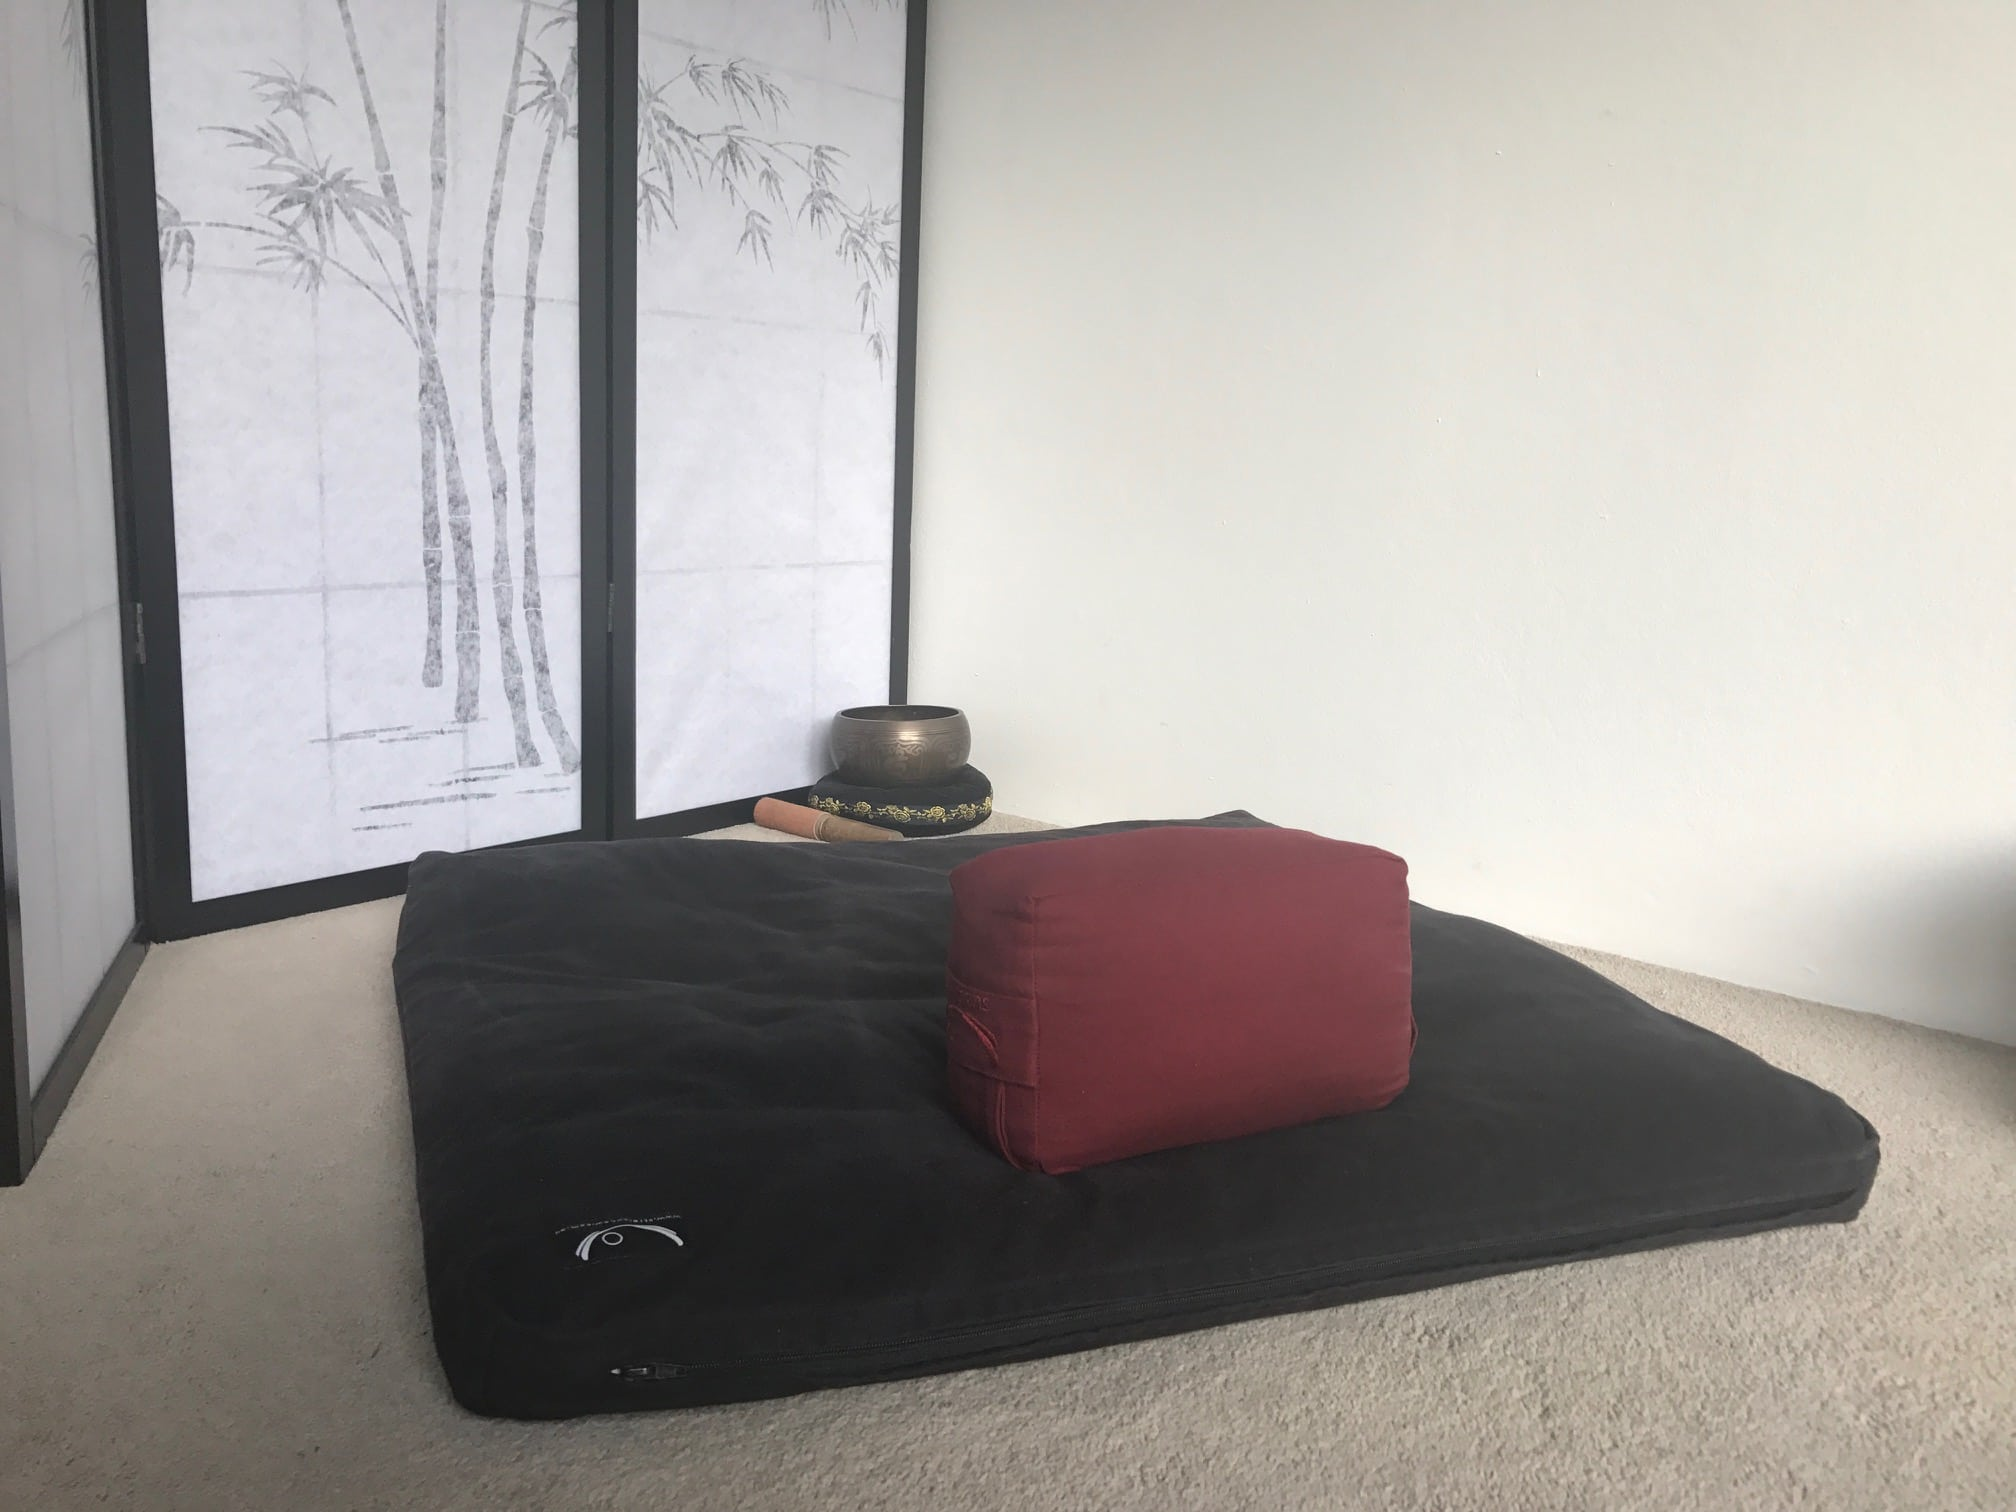 Choosing A Meditation Cushion Chair Or Bench Ultimate Guide - Best meditation cushions to buy right now